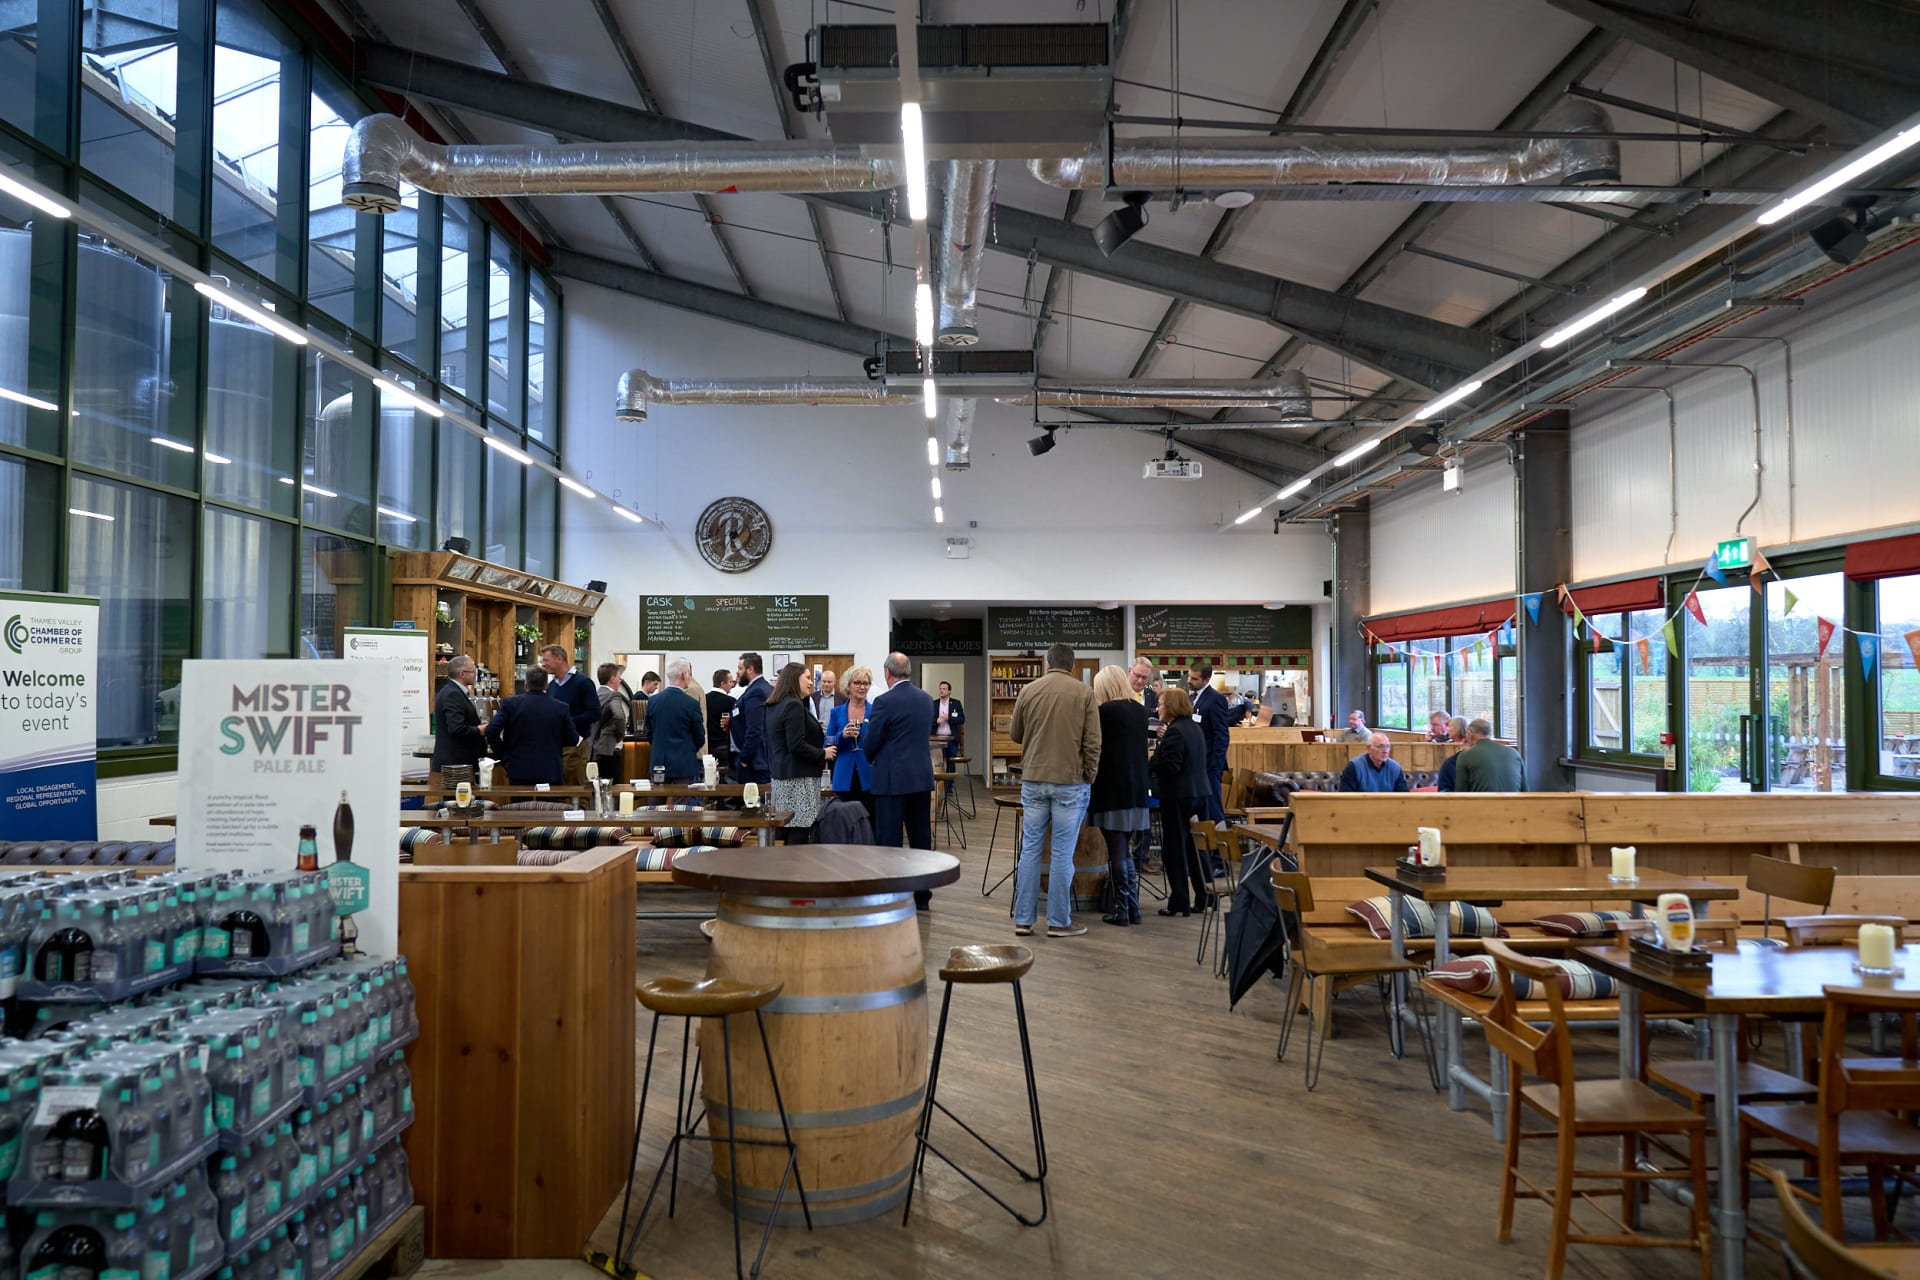 Photograph taken at the West Berkshire Brewery in November 2019 during the Thames Valley Chamber Commerce networking event